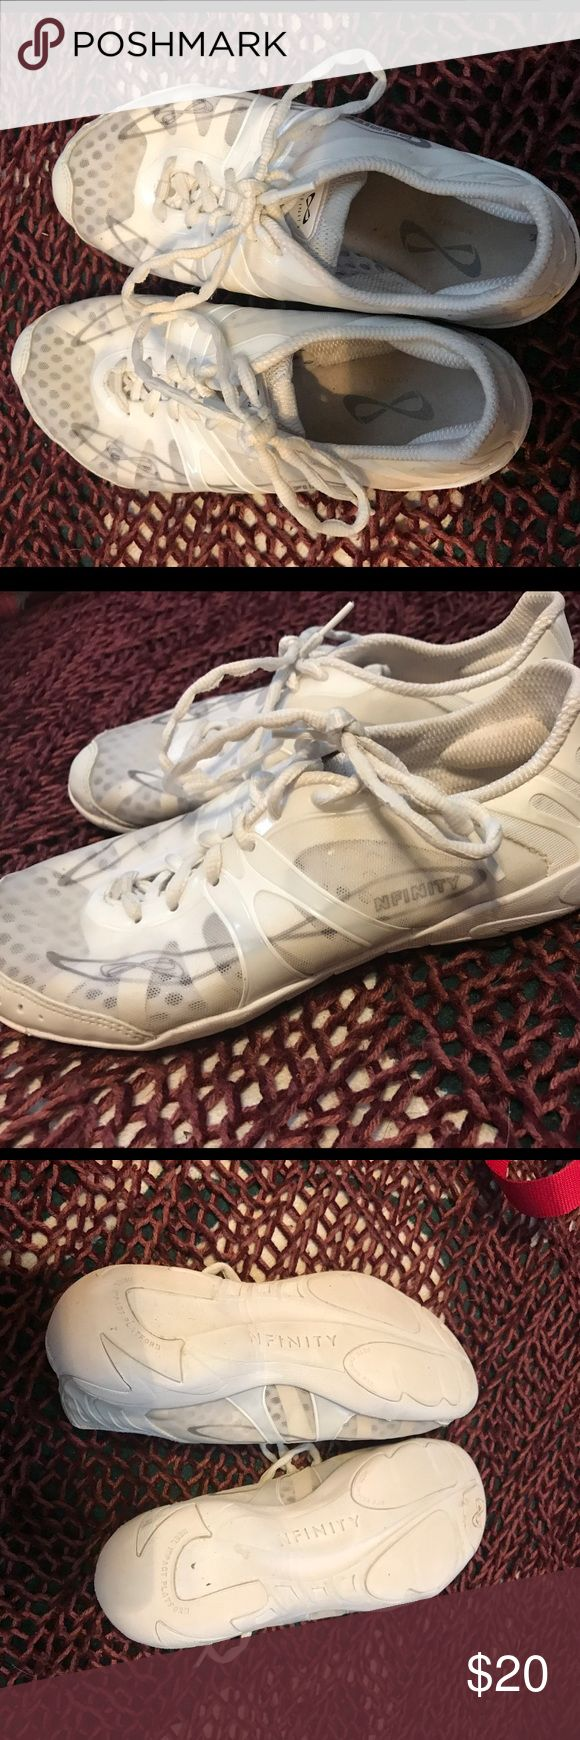 Nfinity cheer shoes with carrying case Never worn outside only used on cheer mats fairly new cheer shoes carrying case is included! nfinity Shoes Athletic Shoes